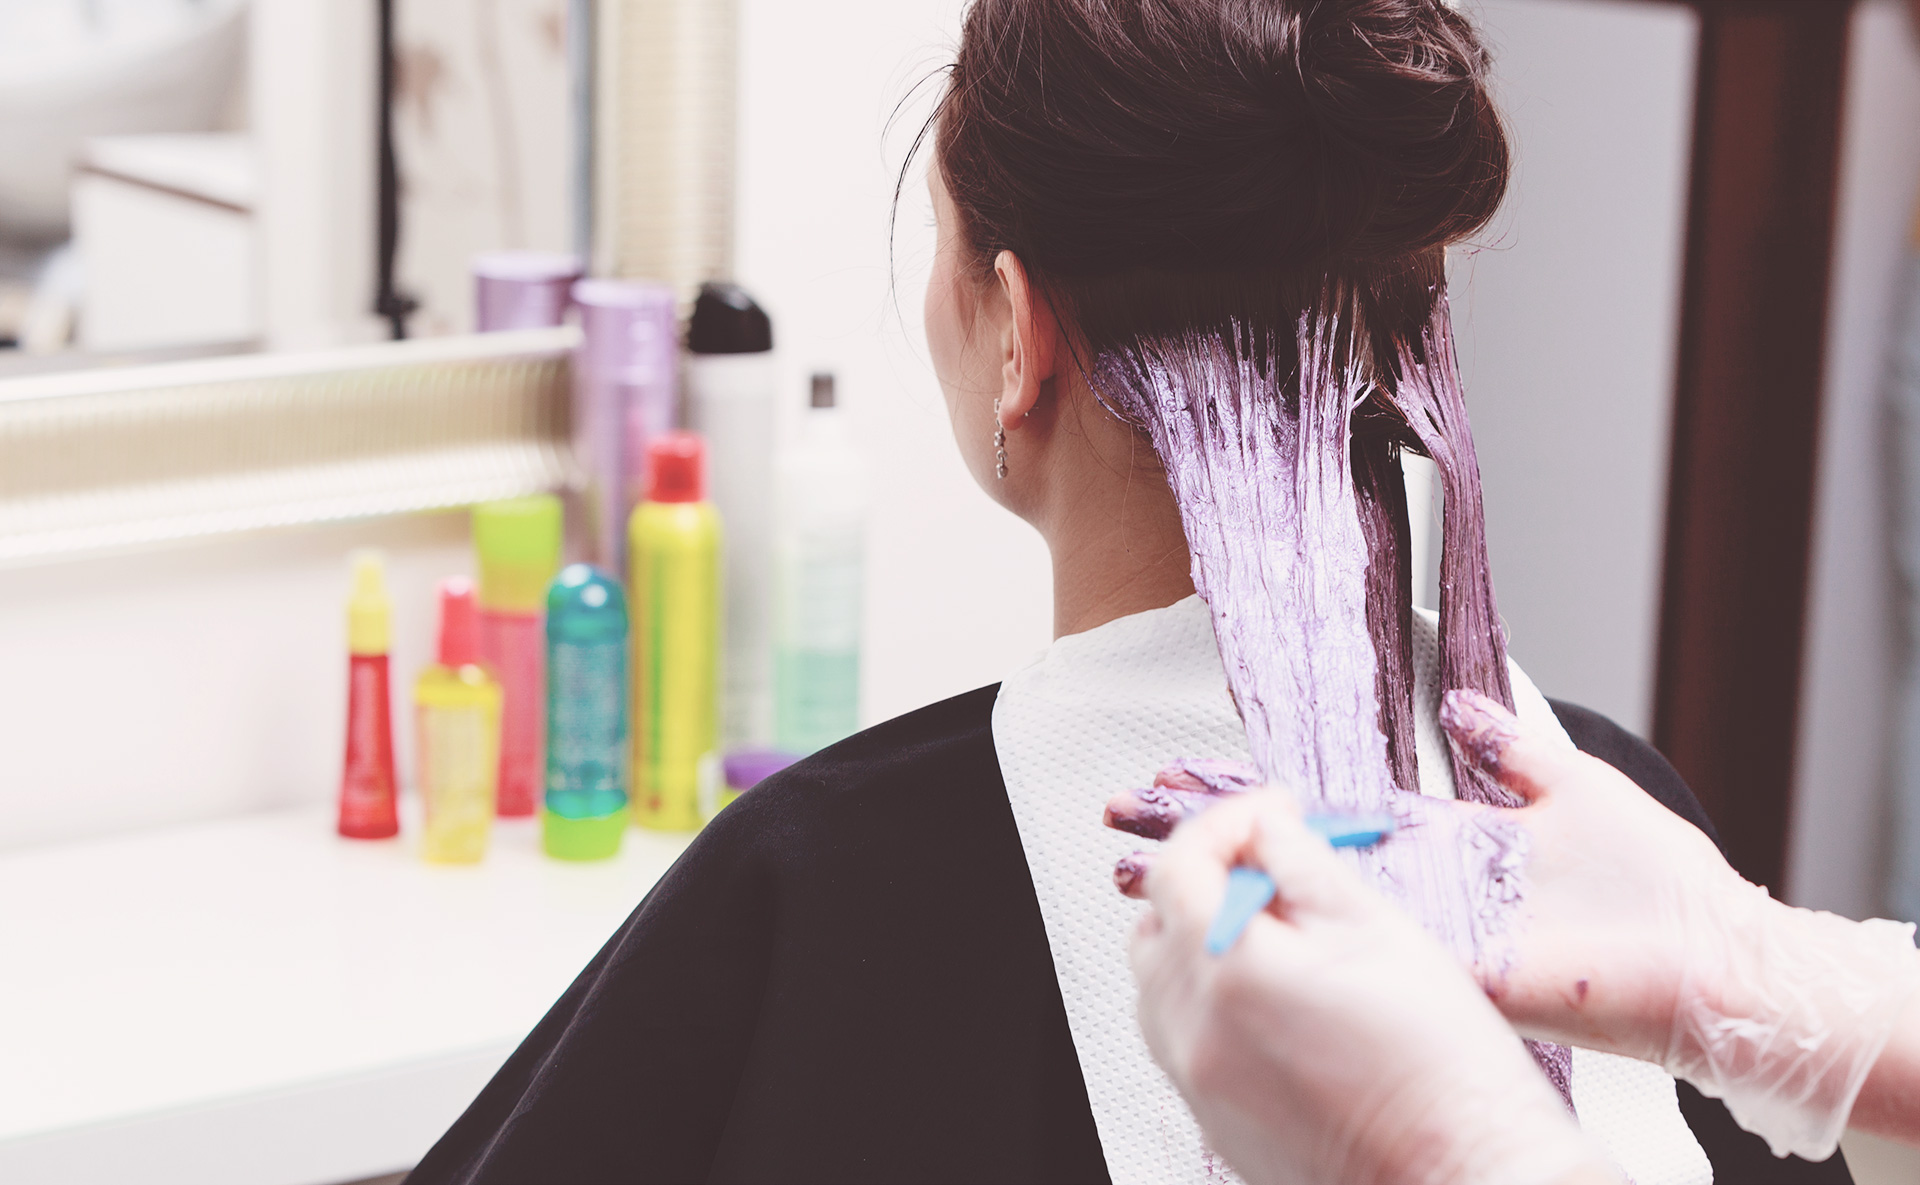 Can You Dye Your Hair When Pregnant?